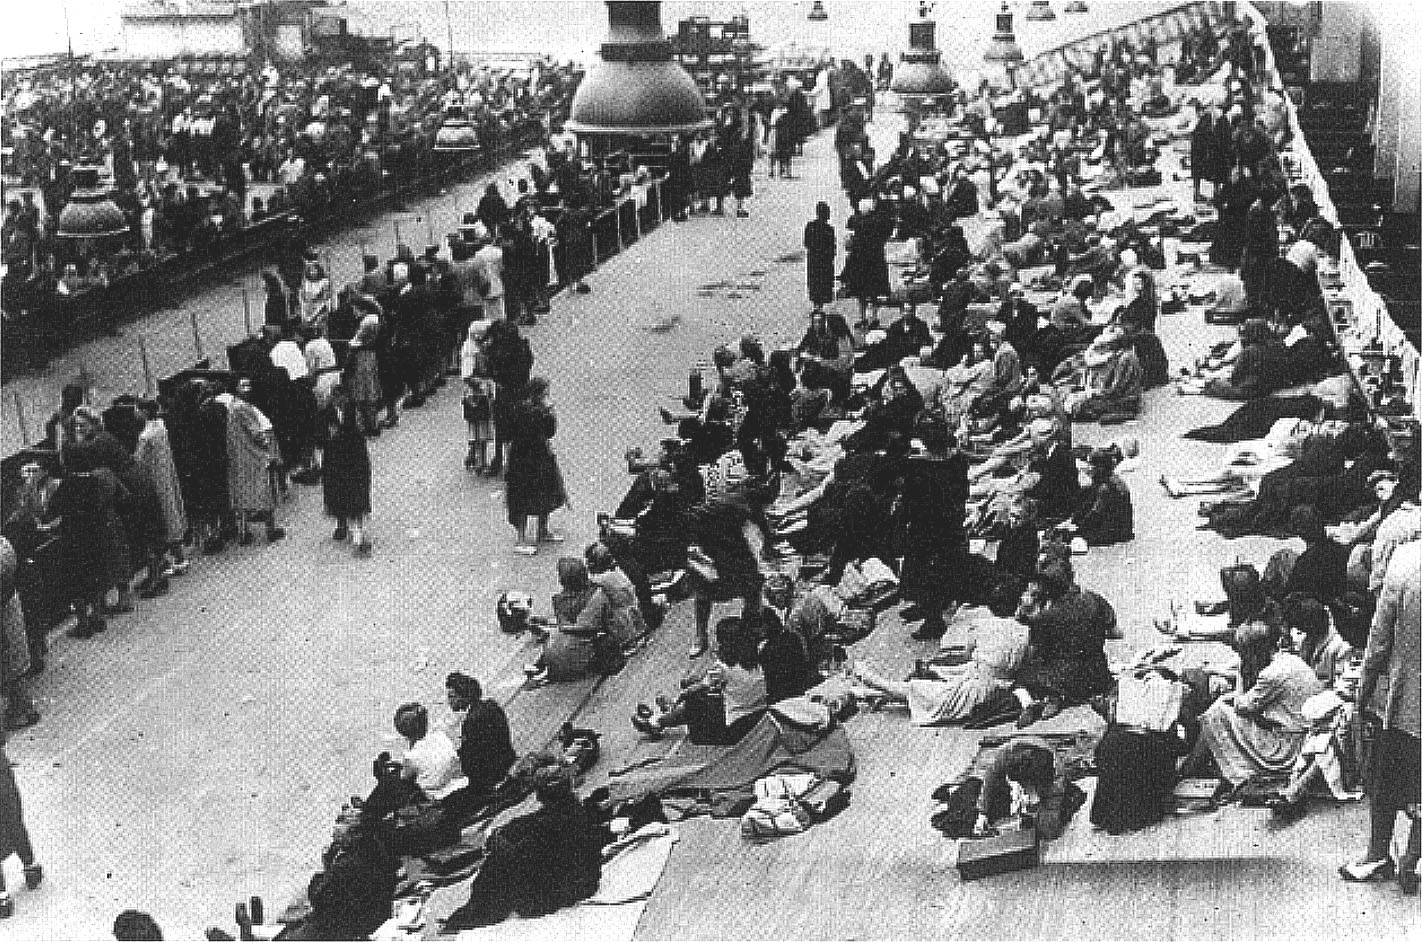 Round up at the Vélodrome d'Hiver in July 1942